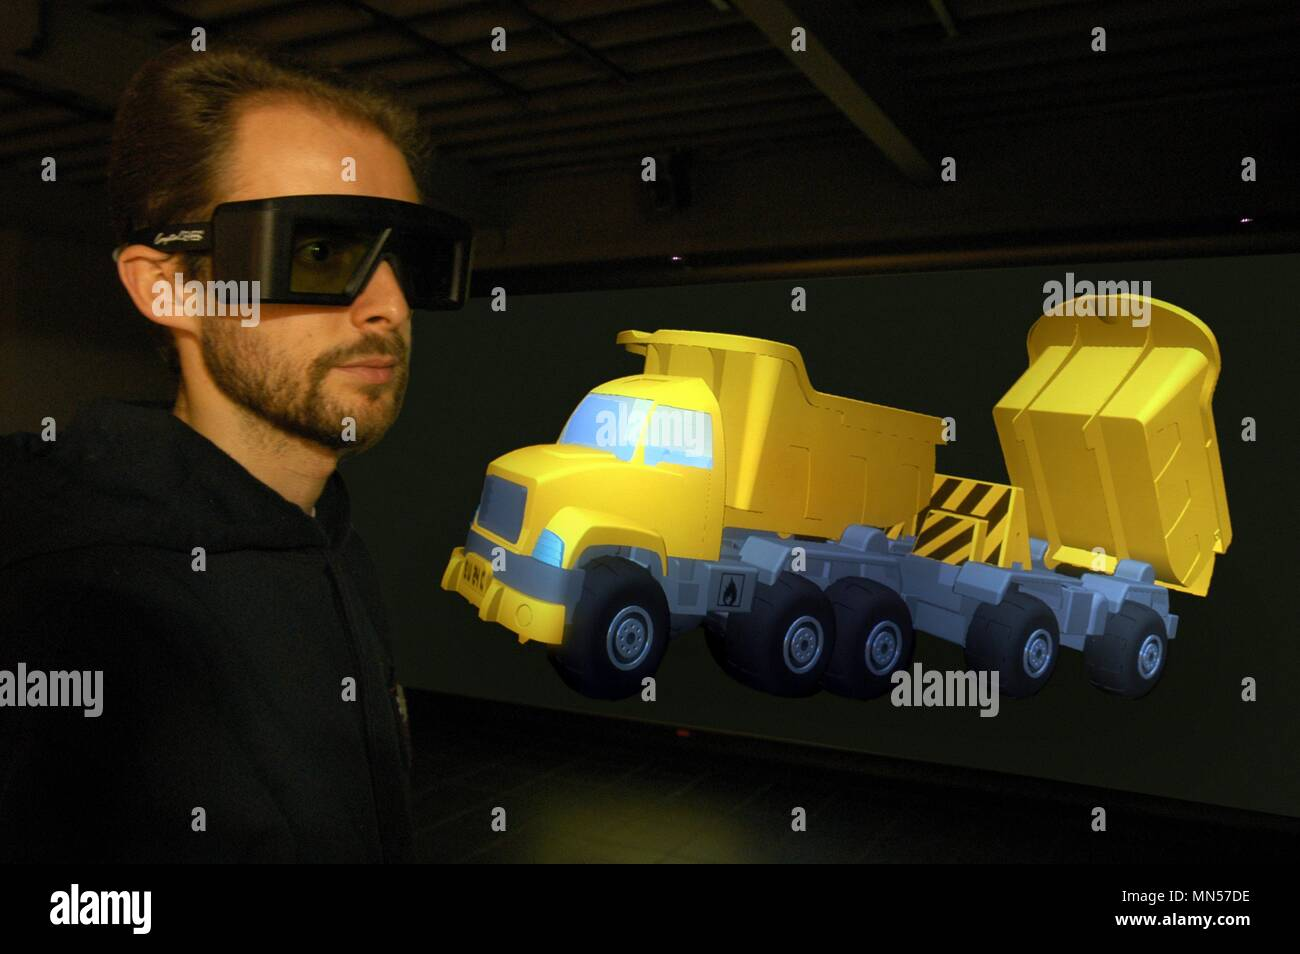 University of Milan - Bovisa (Italy), department of Design, laboratory of Virtual Models, three-dimensional projection of a truck Stock Photo